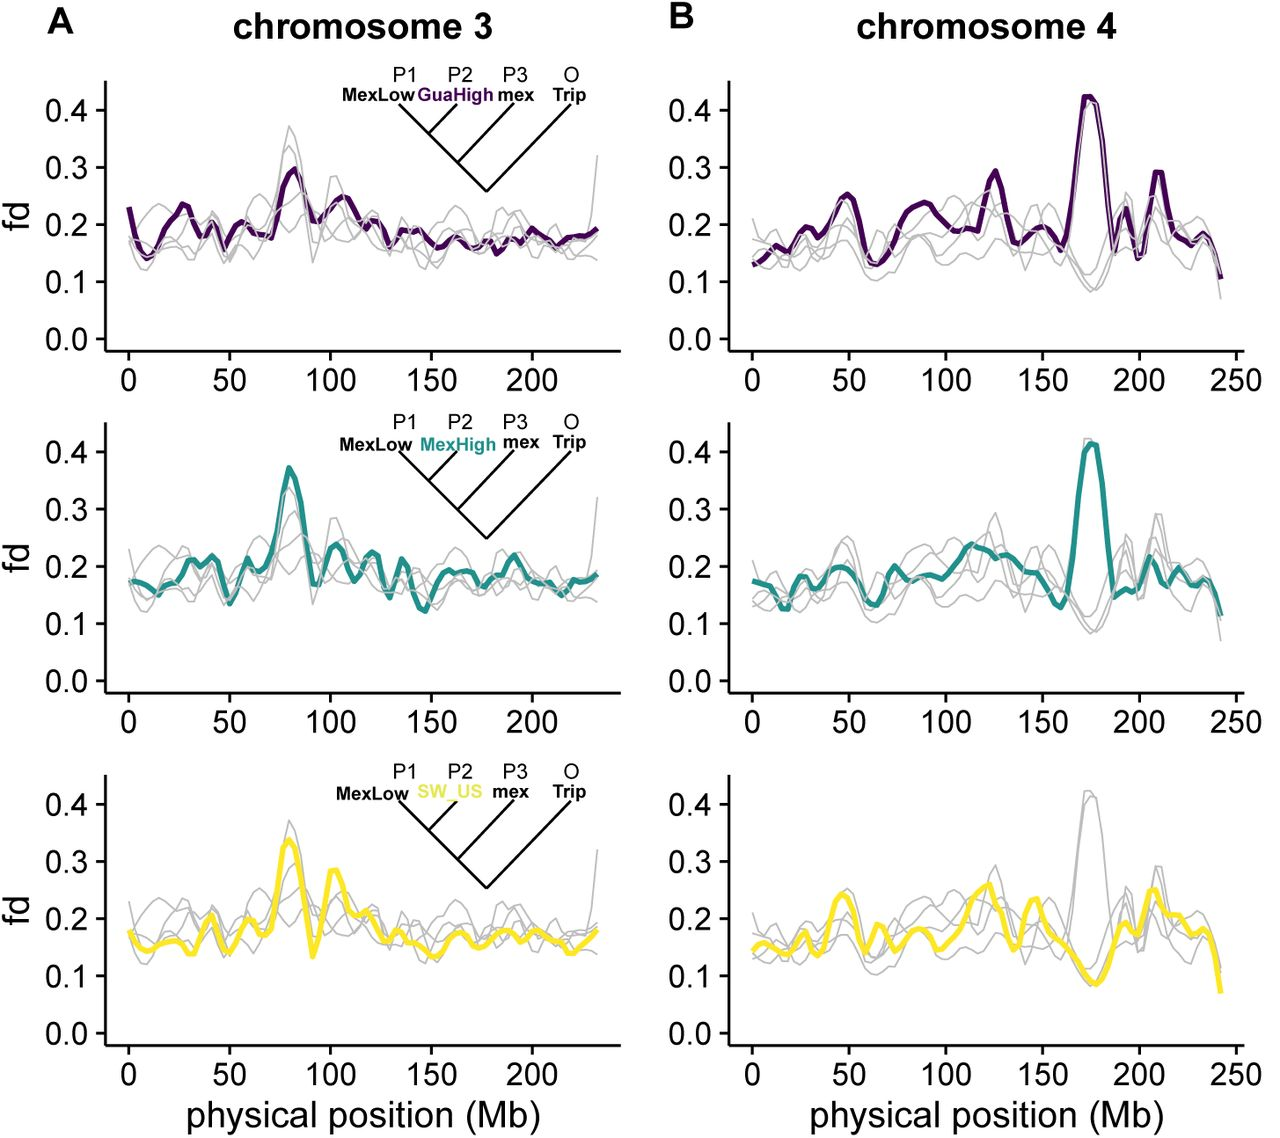 The interplay of demography and selection during maize domestication